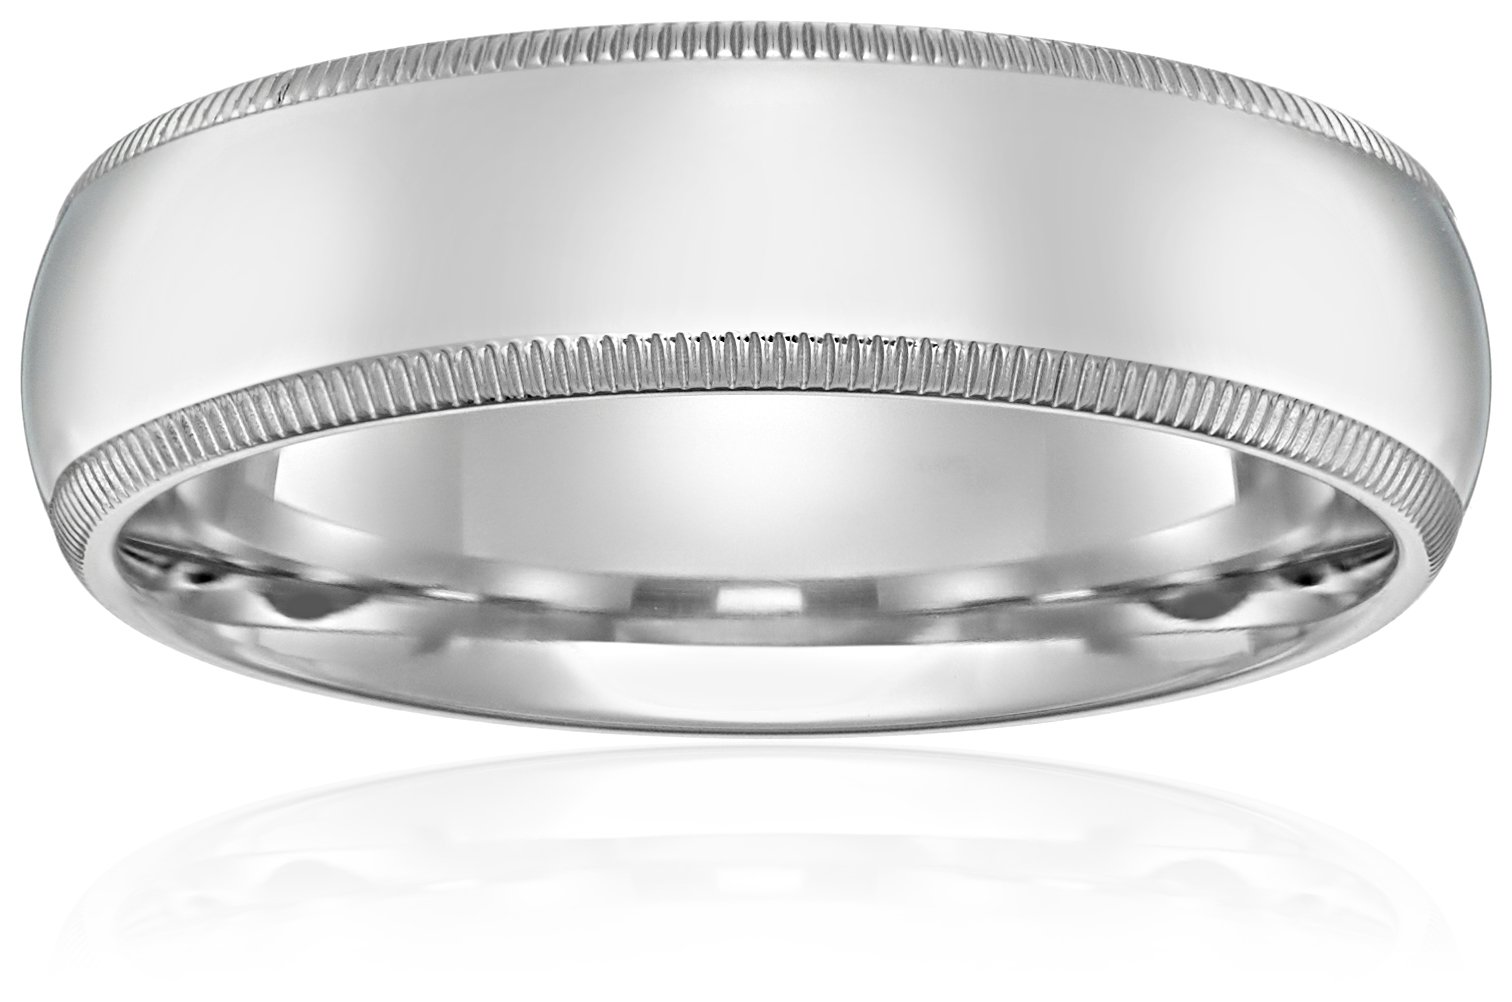 Standard Comfort-Fit 10K White Gold Milgrain Band, 6mm, Size 8.5 by Amazon Collection